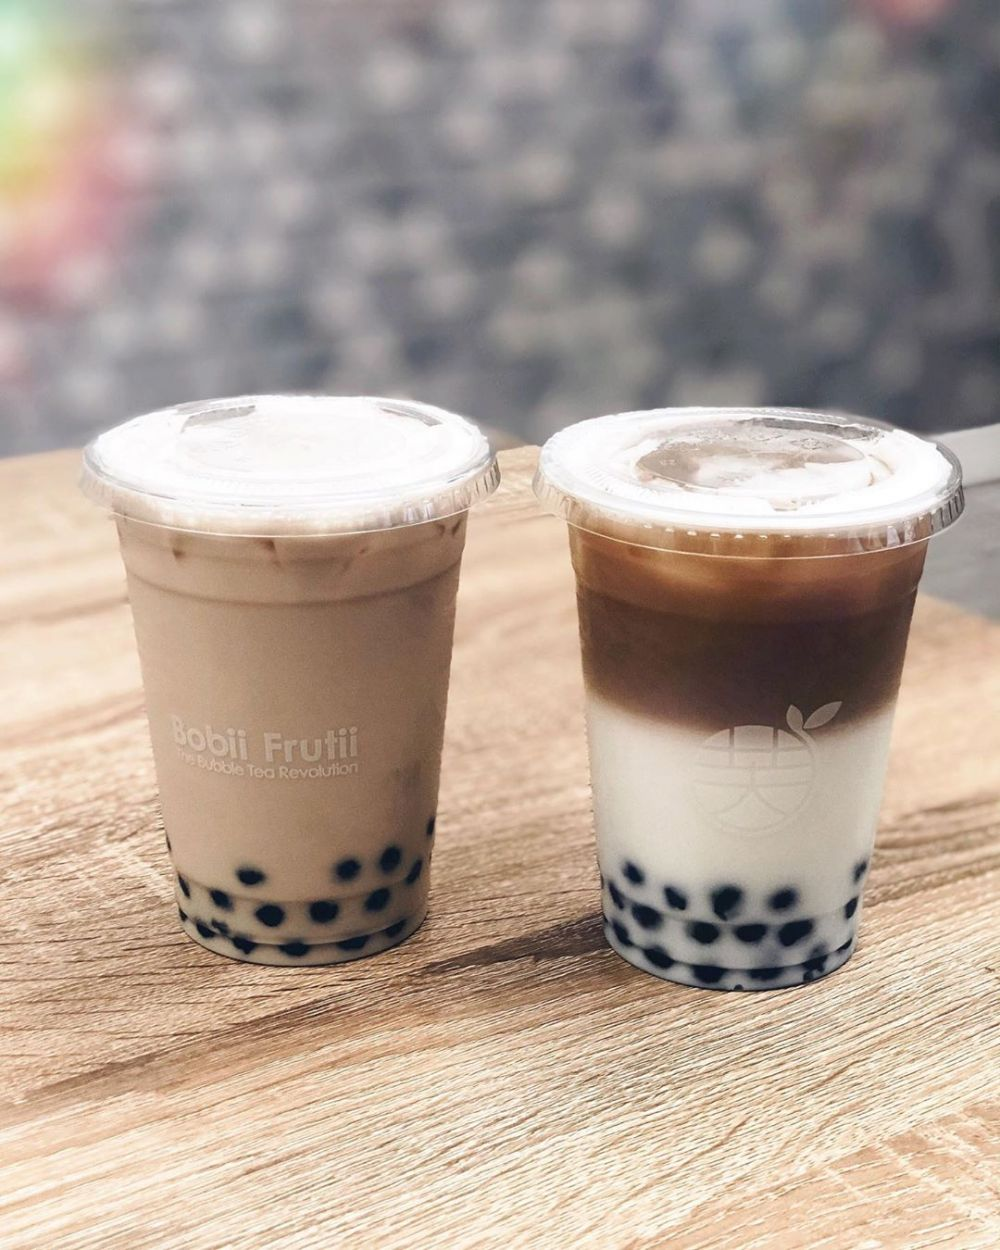 bahaya bubble tea © 2019 brilio.net